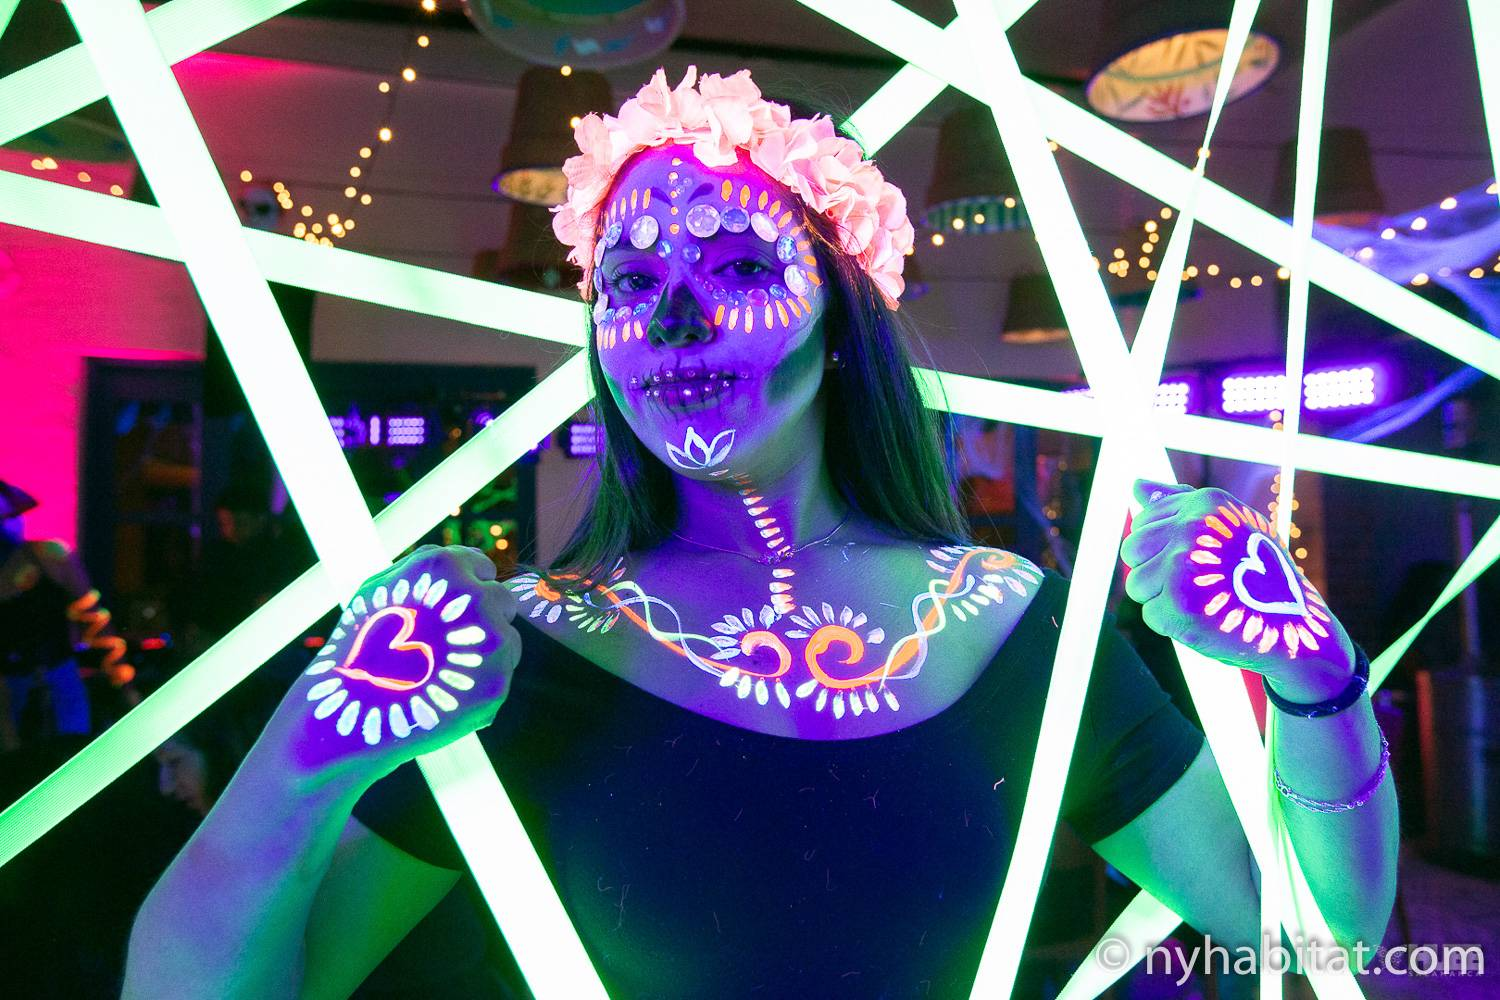 An image of a woman with glow in the dark Halloween face and body paint surrounded by neon lights.